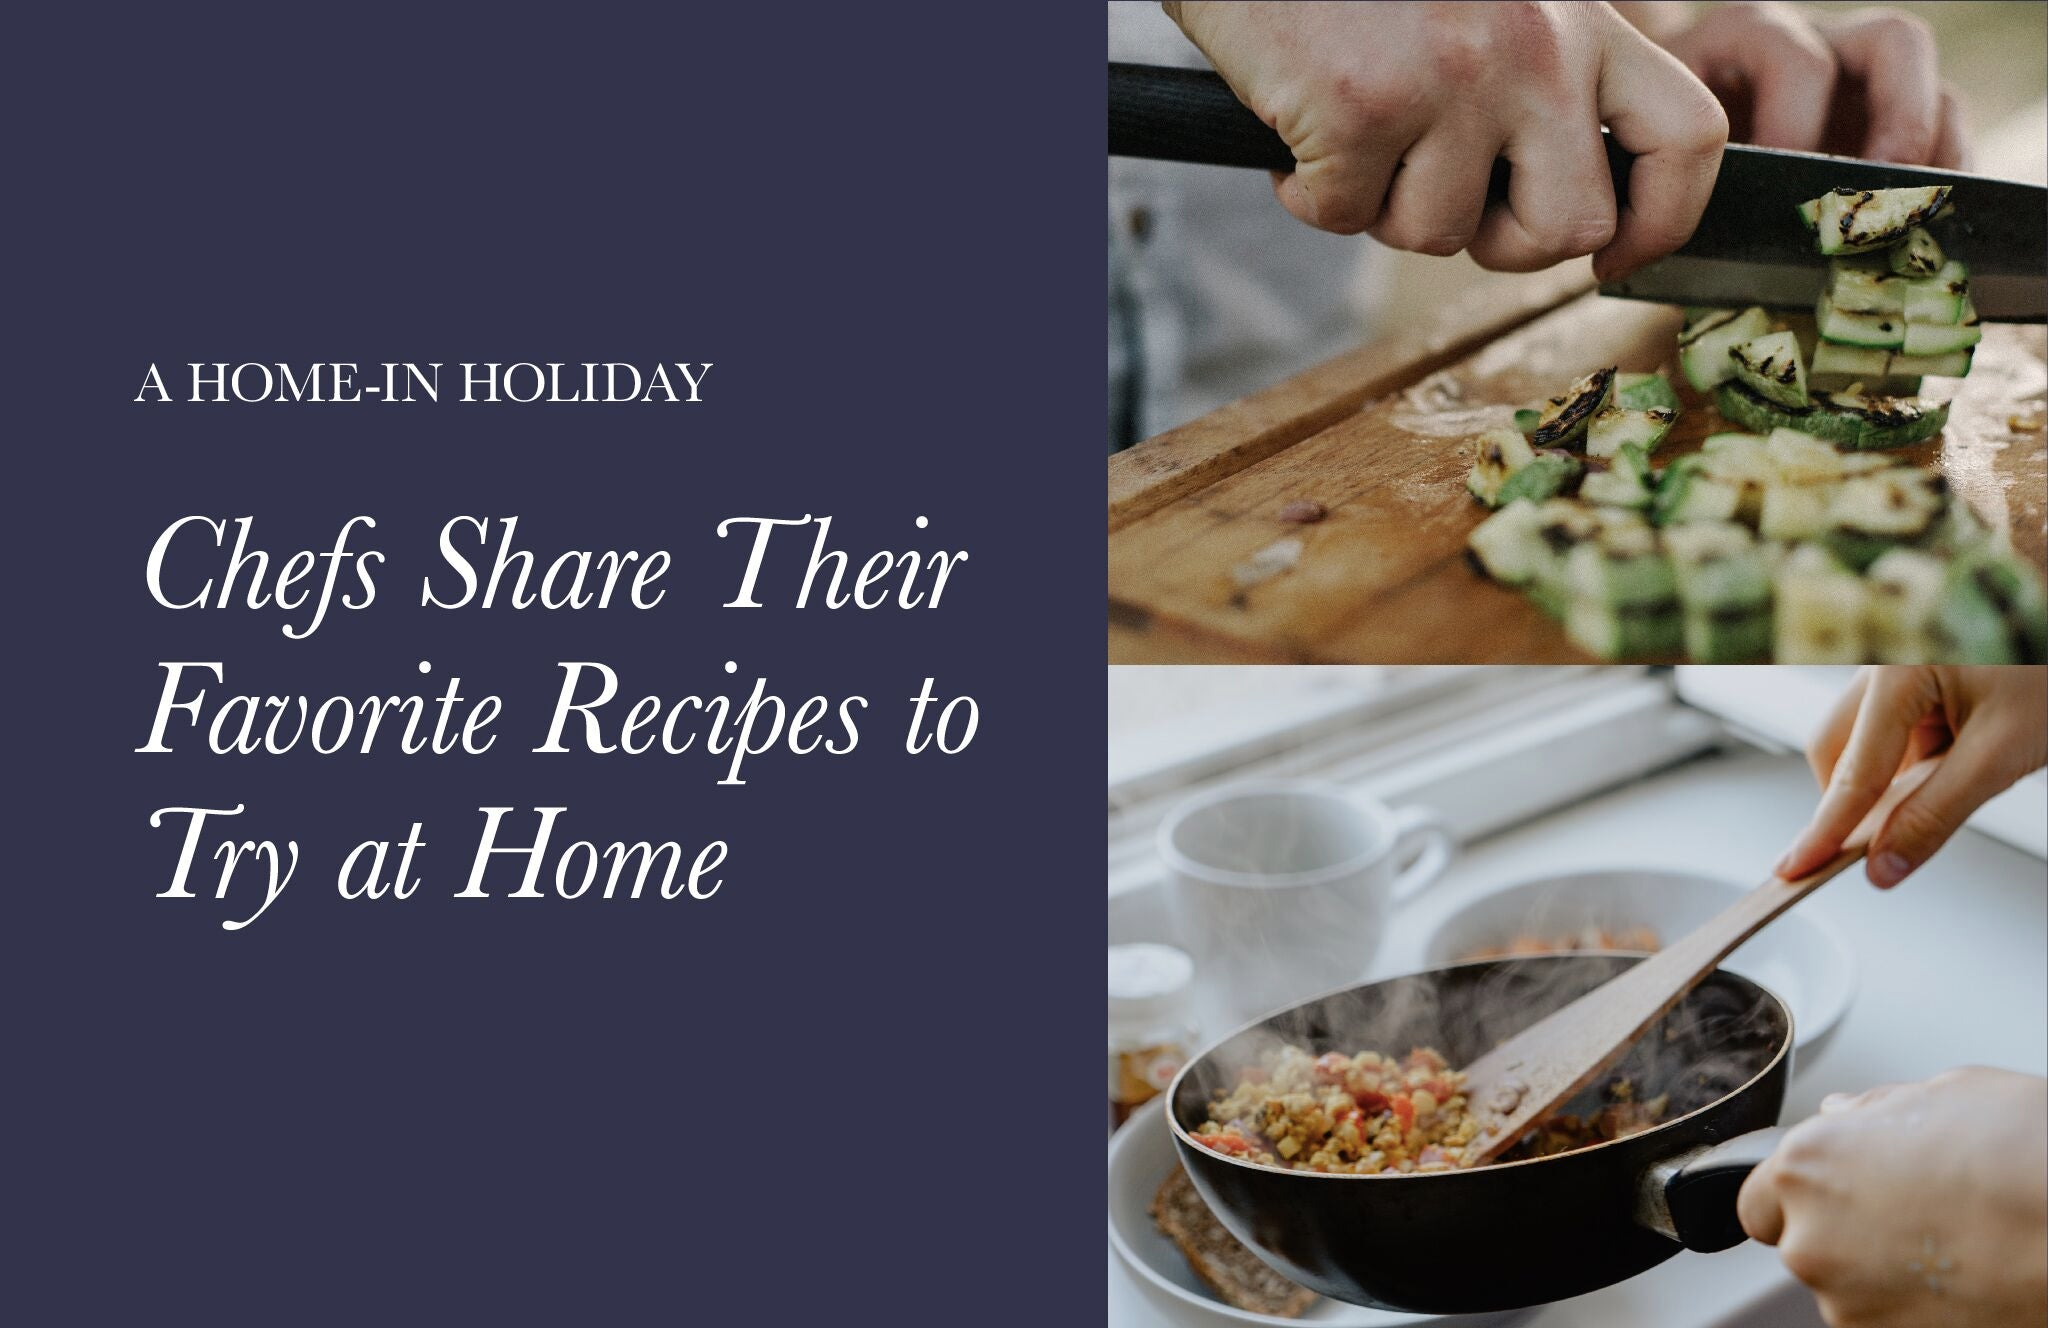 Chefs Share Their Favorite Recipes to Try at Home